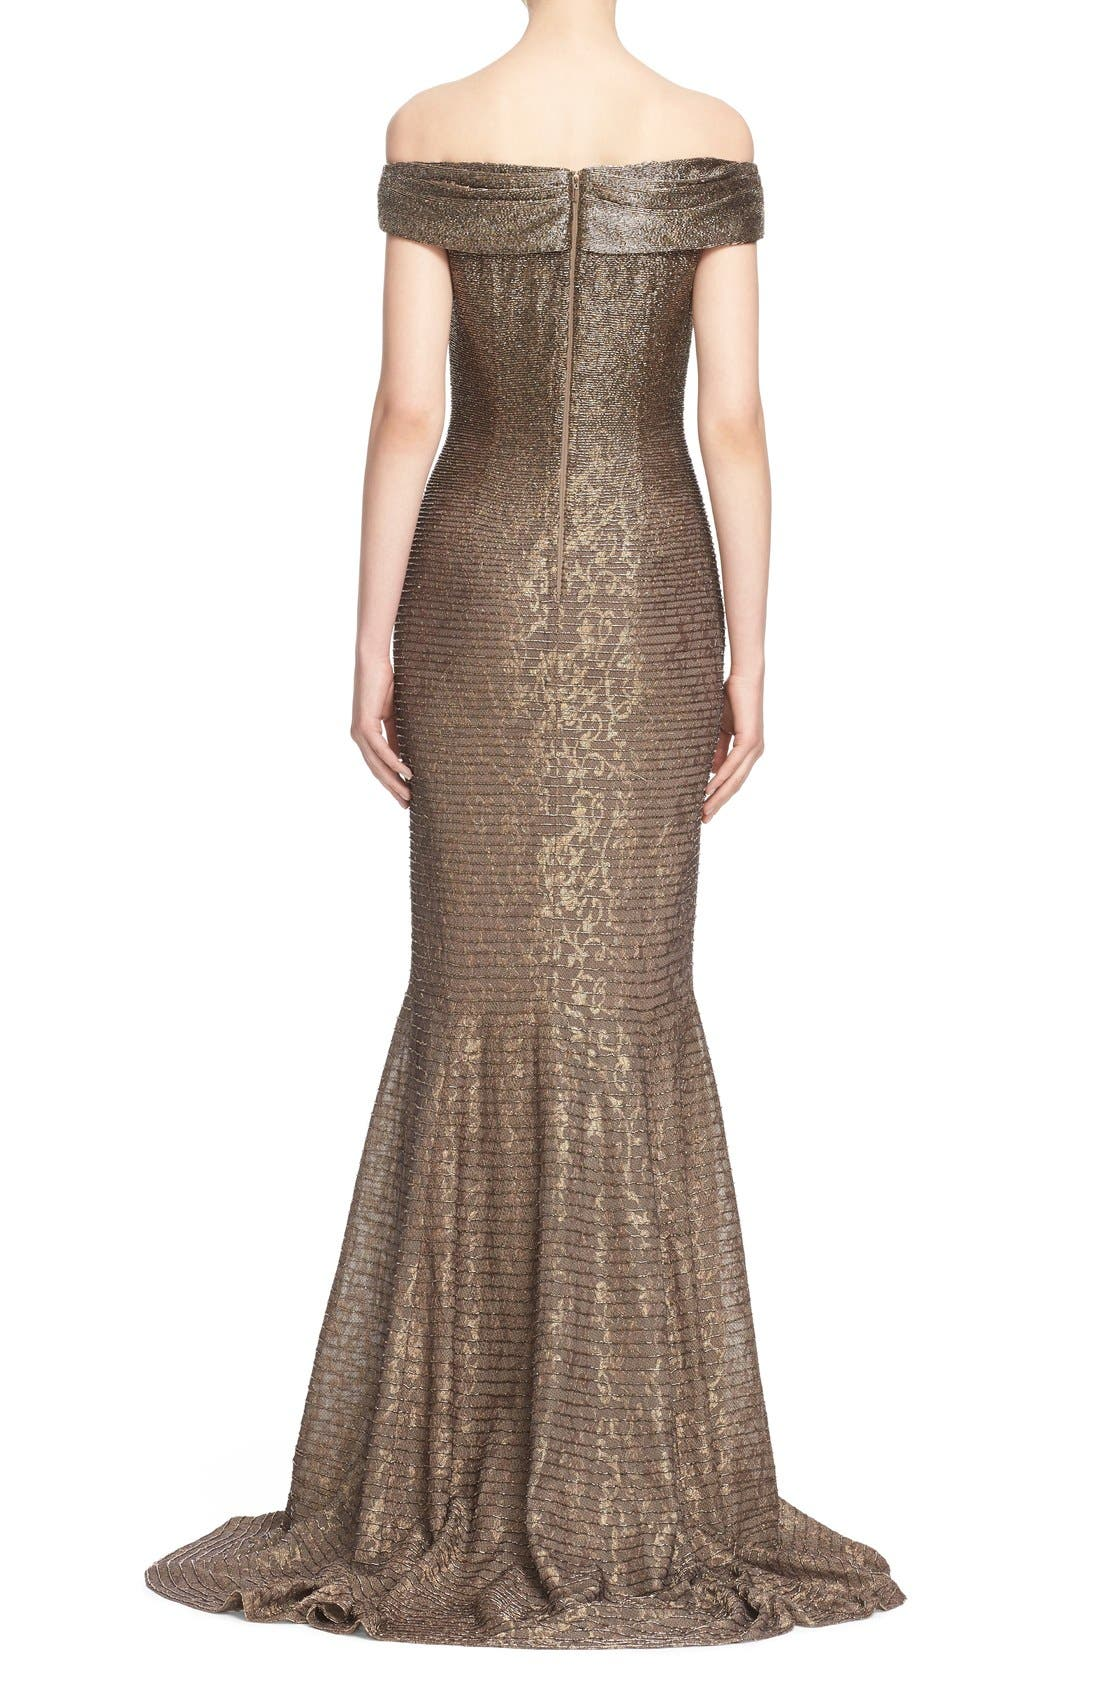 CARMEN MARC VALVO COUTURE,                             Beaded Off the Shoulder Lace Mermaid Gown,                             Alternate thumbnail 3, color,                             710